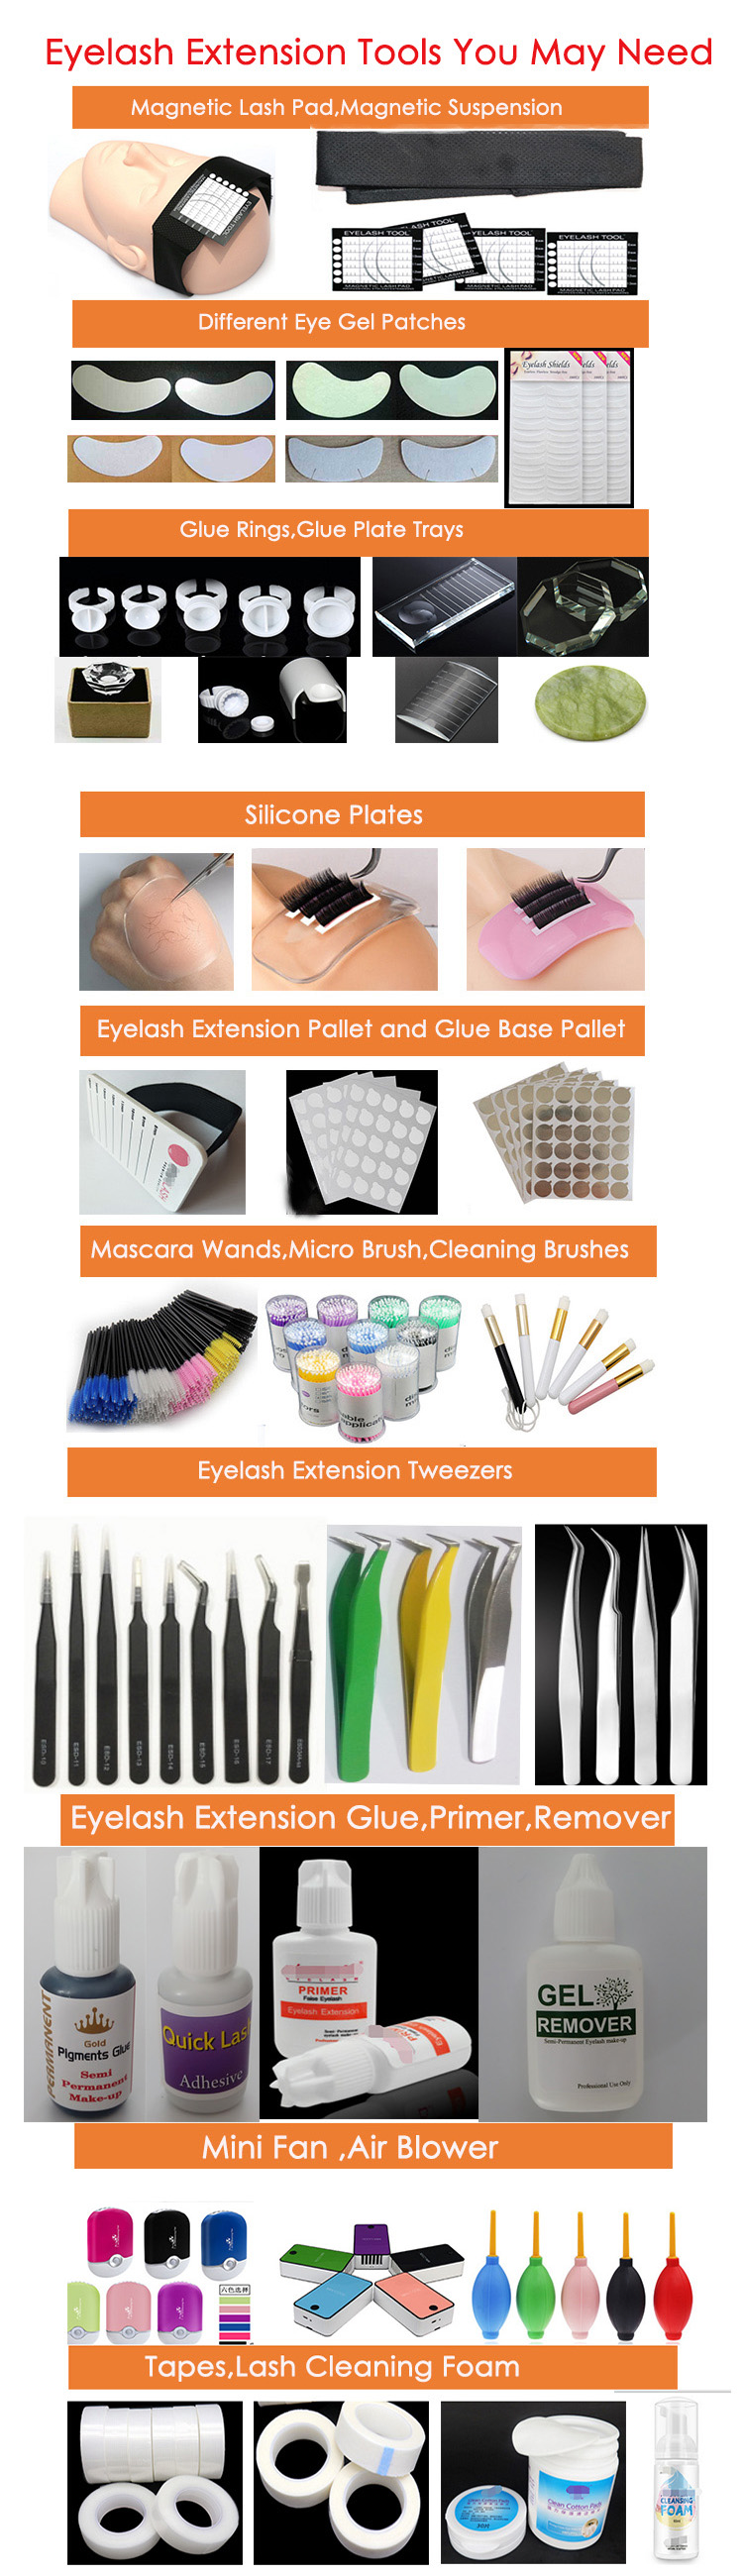 eyelash extensions accessories products wholesale private label.jpg